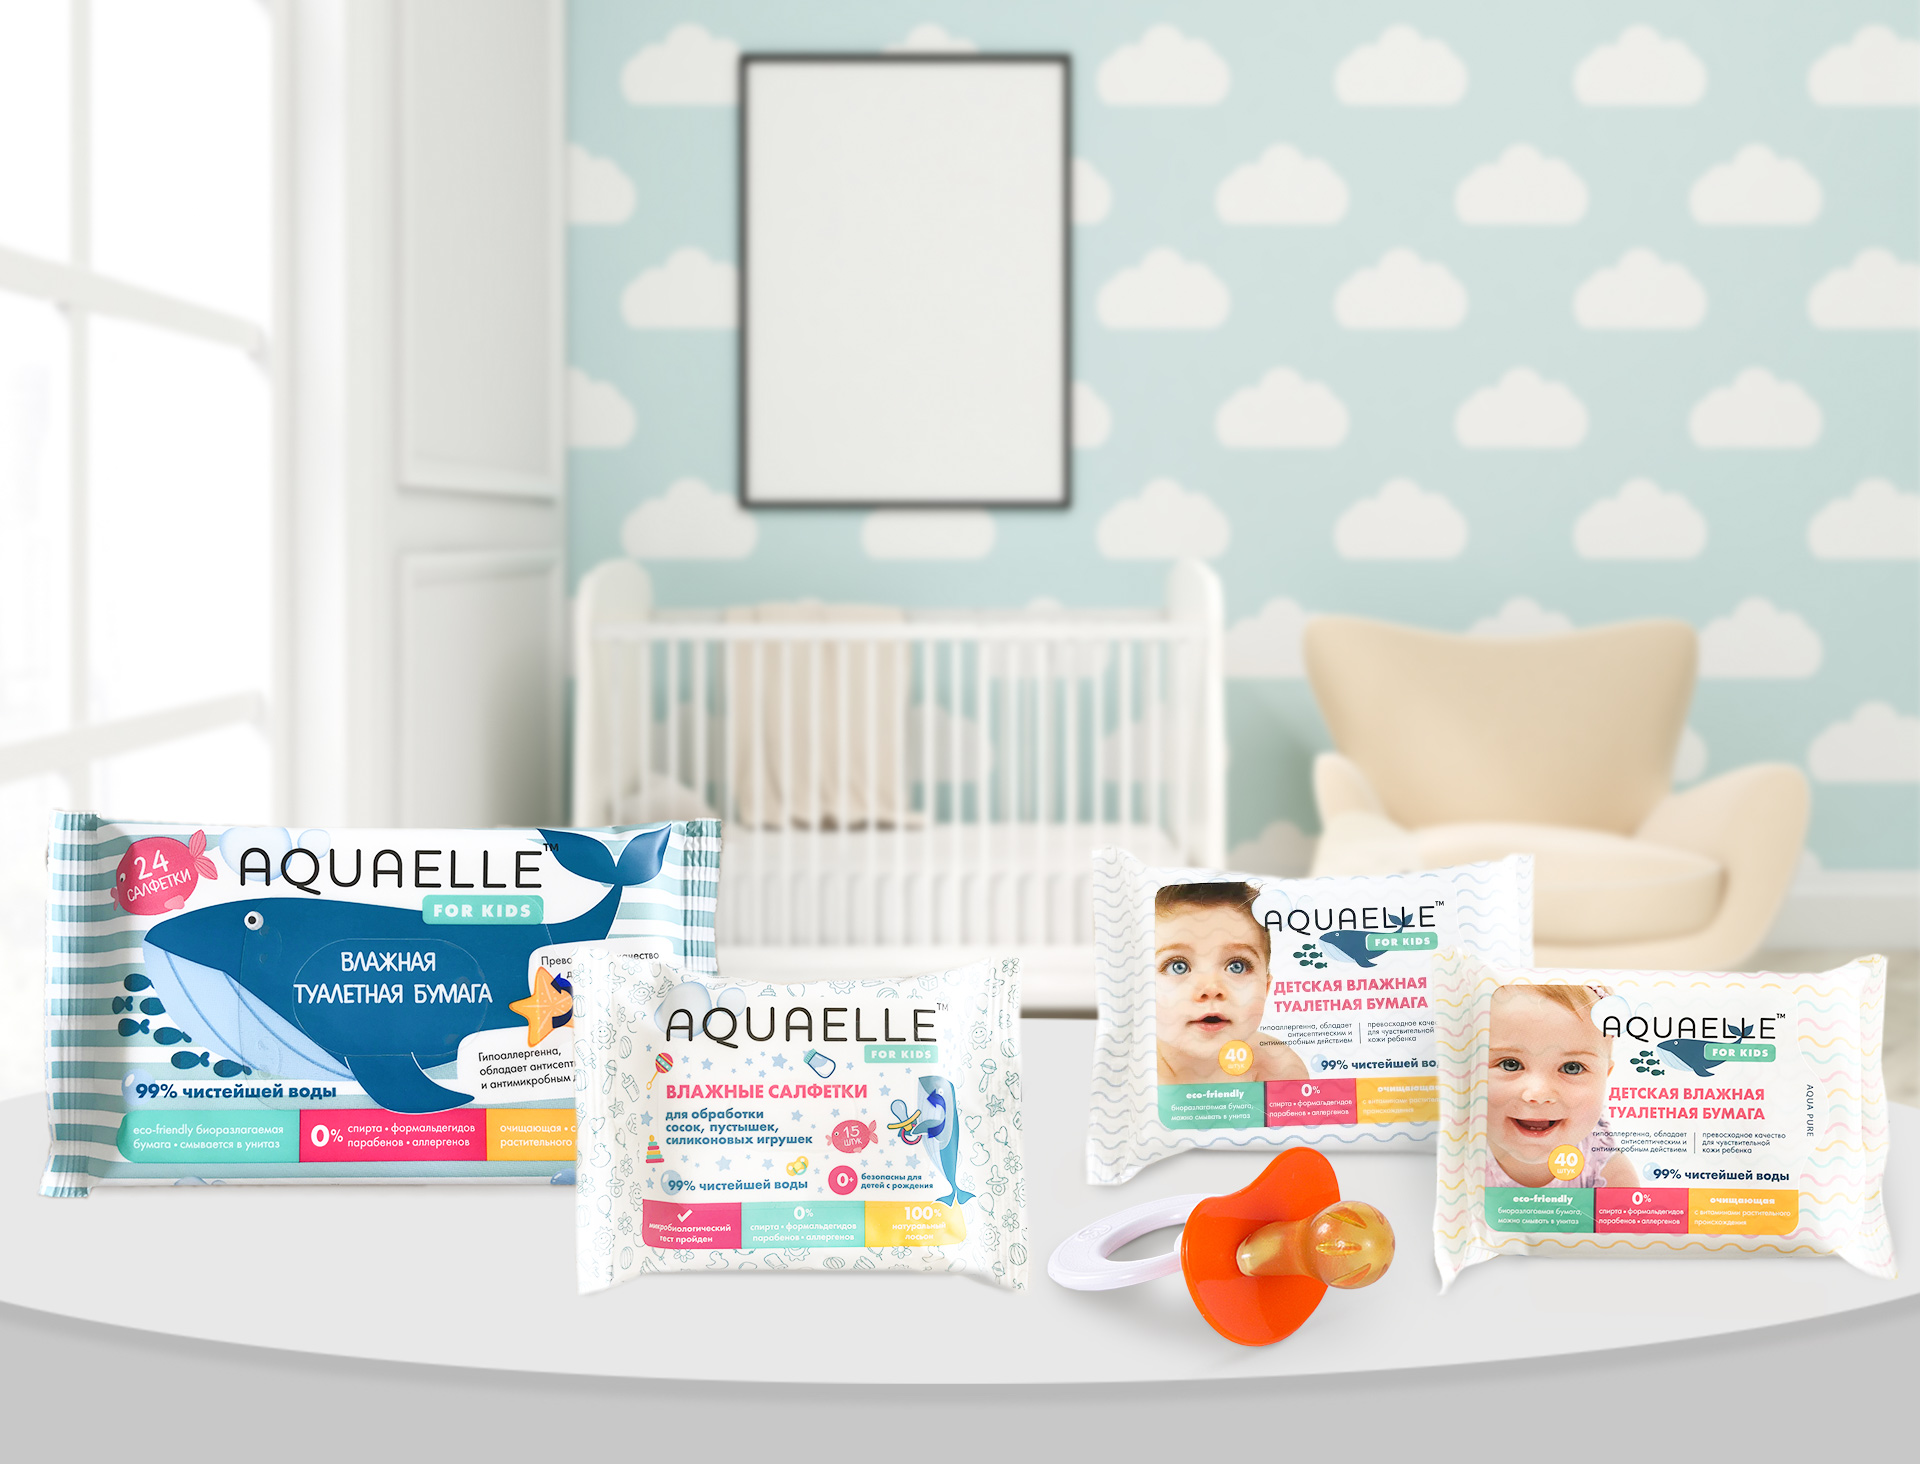 Aquaelle for Kids - taking care of children since birth!